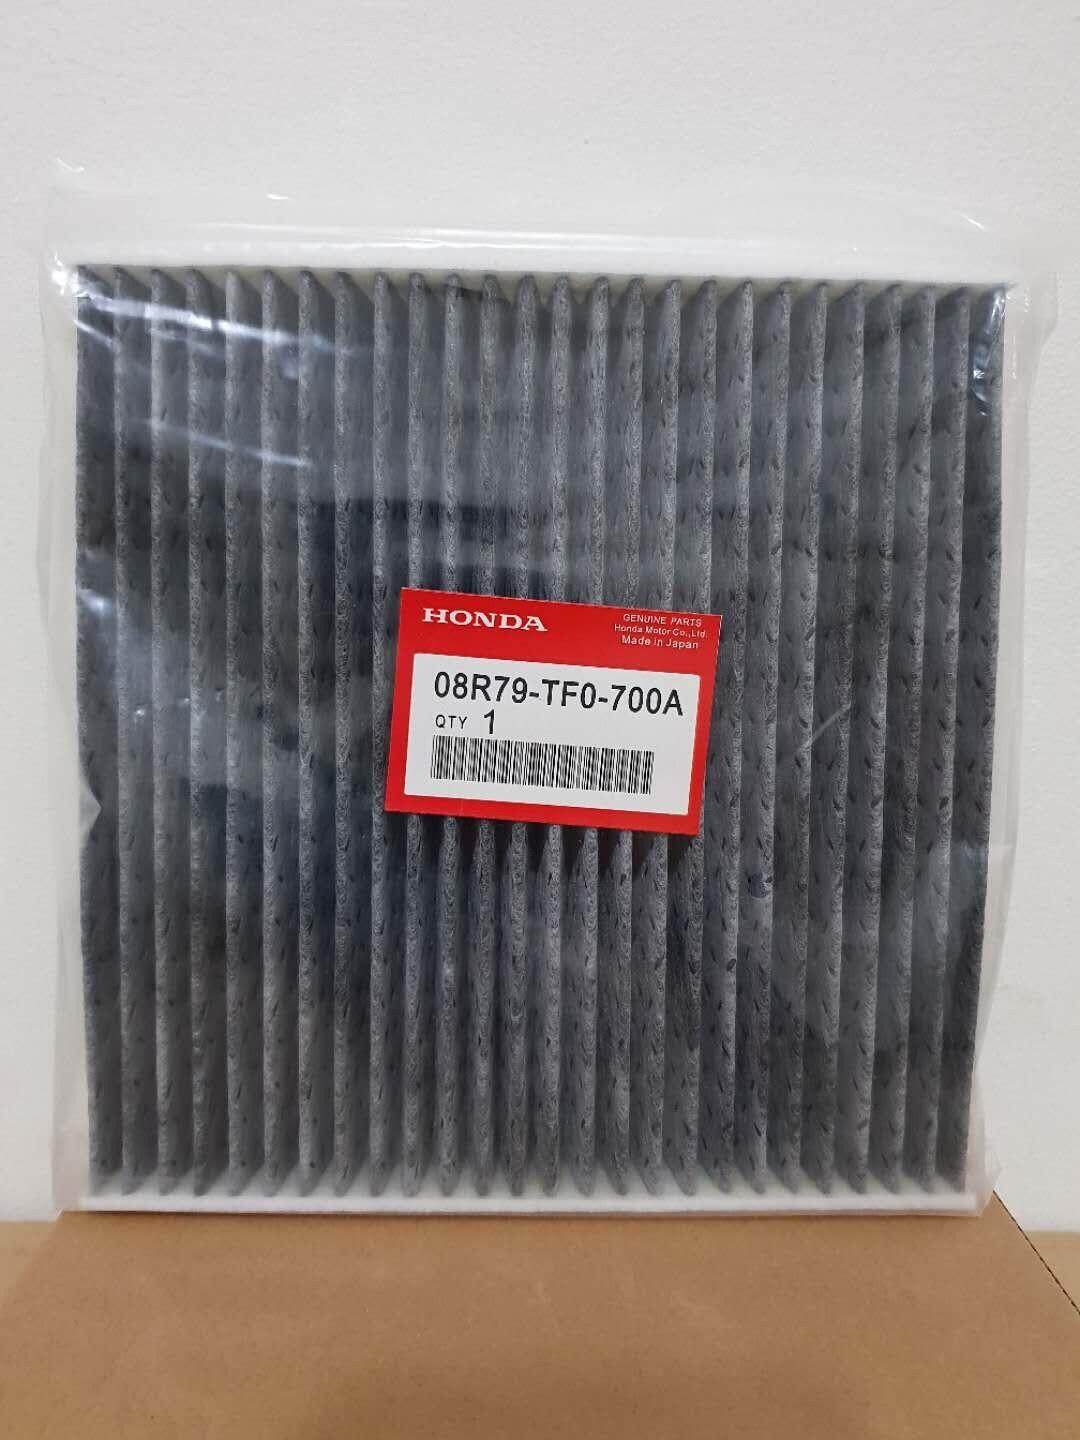 Honda Auto Parts Spares Price In Malaysia Best Wiring Relay Lampu Kereta City Jazz Brv Civic Hrv Cabin Filter